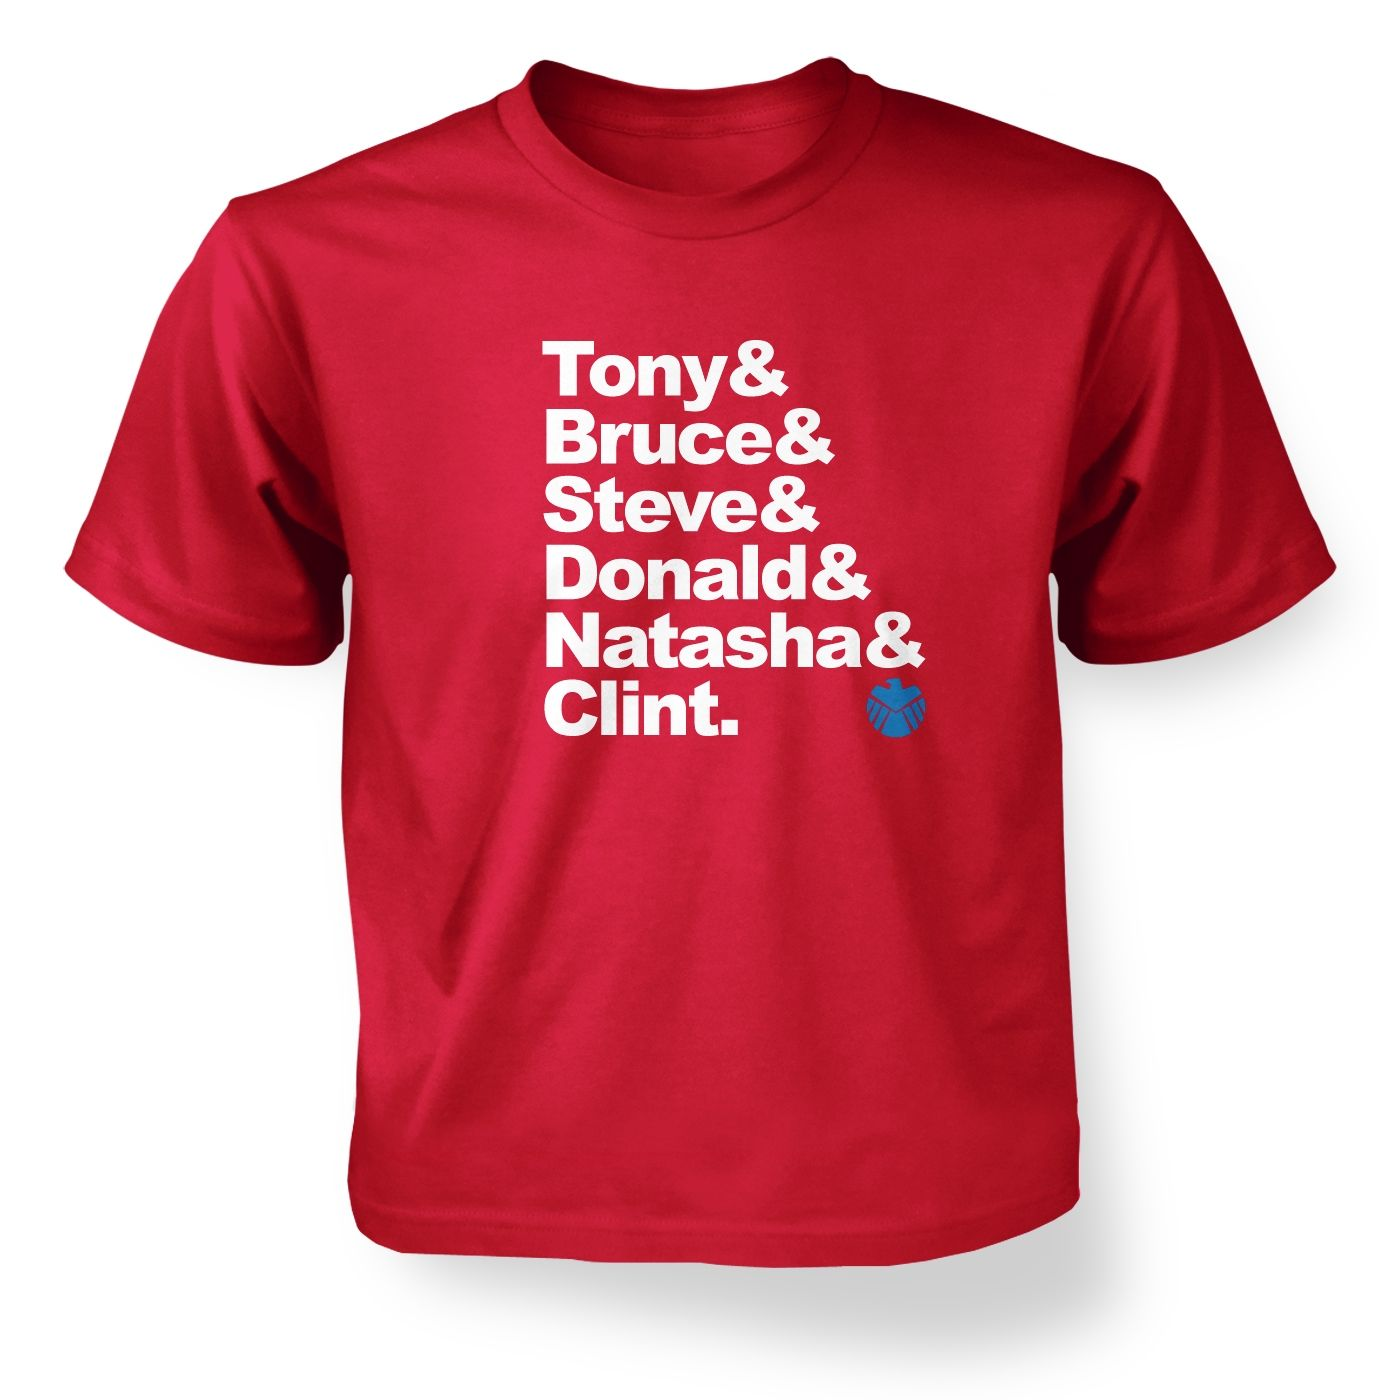 Tony And Bruce And kids' t-shirt